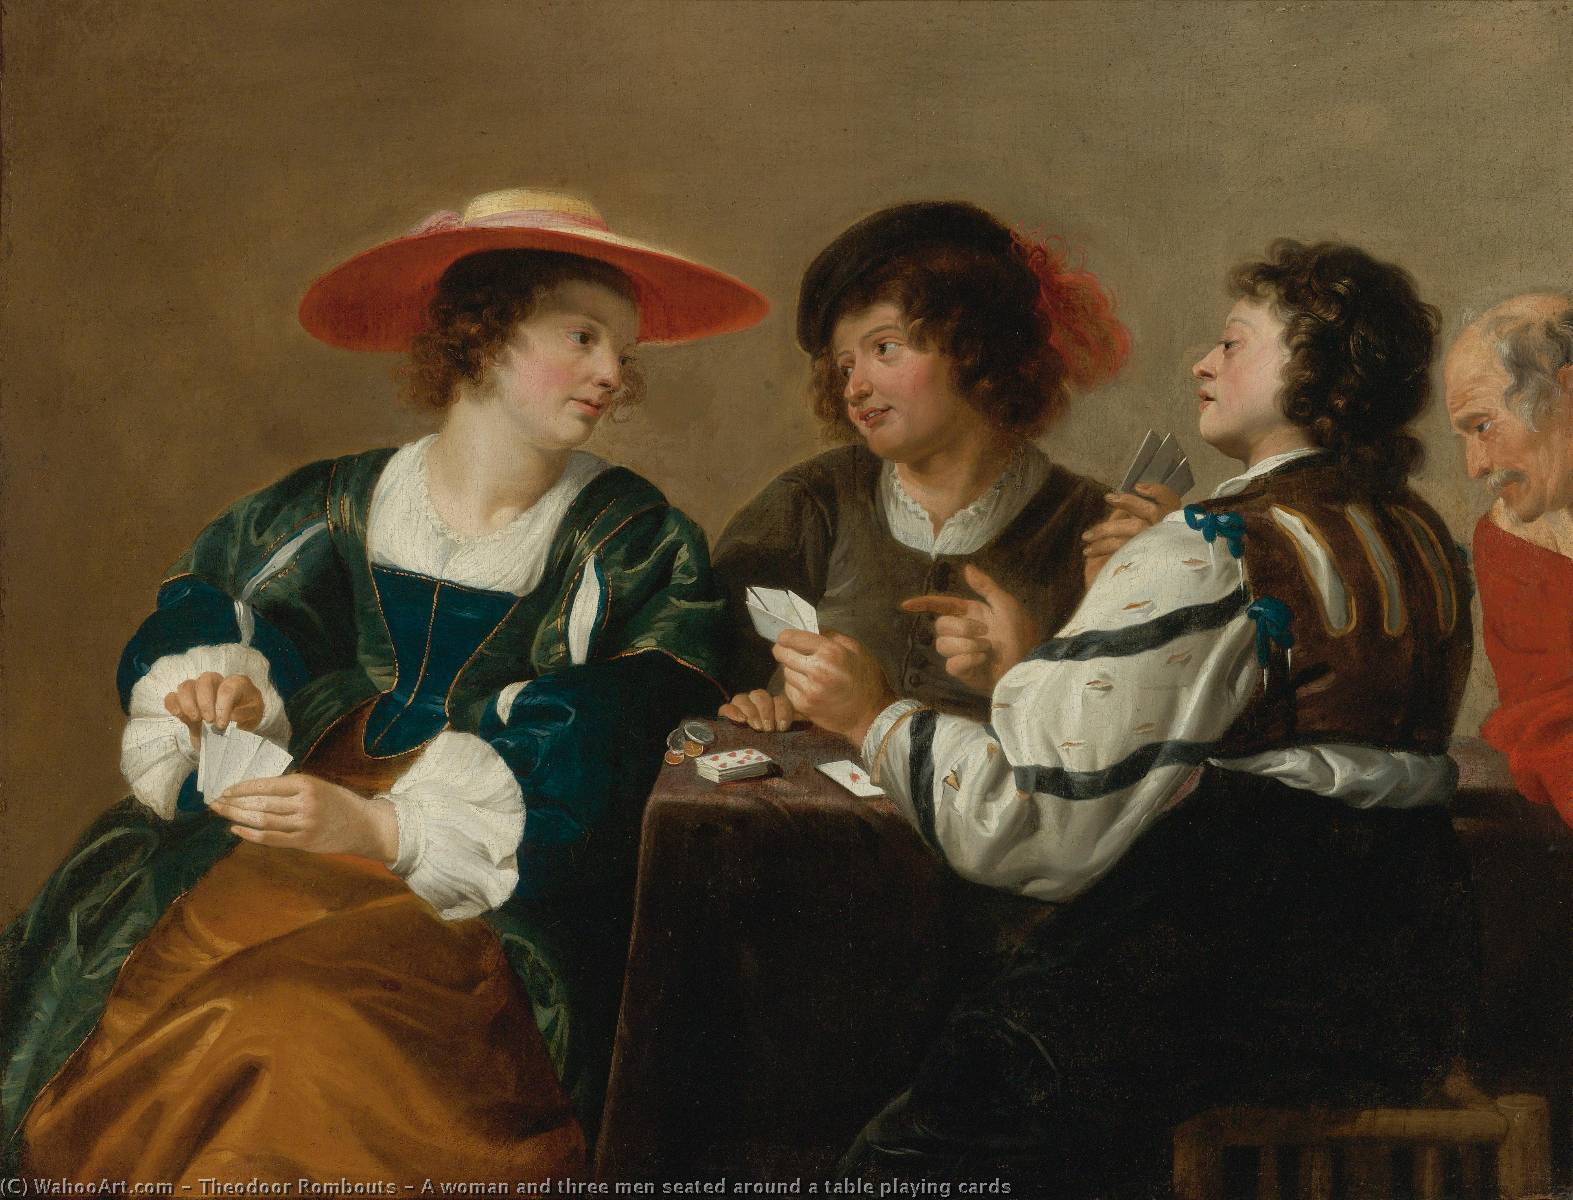 A woman and three men seated around a table playing cards by Theodor Rombouts (1597-1637, Belgium) | Oil Painting | WahooArt.com